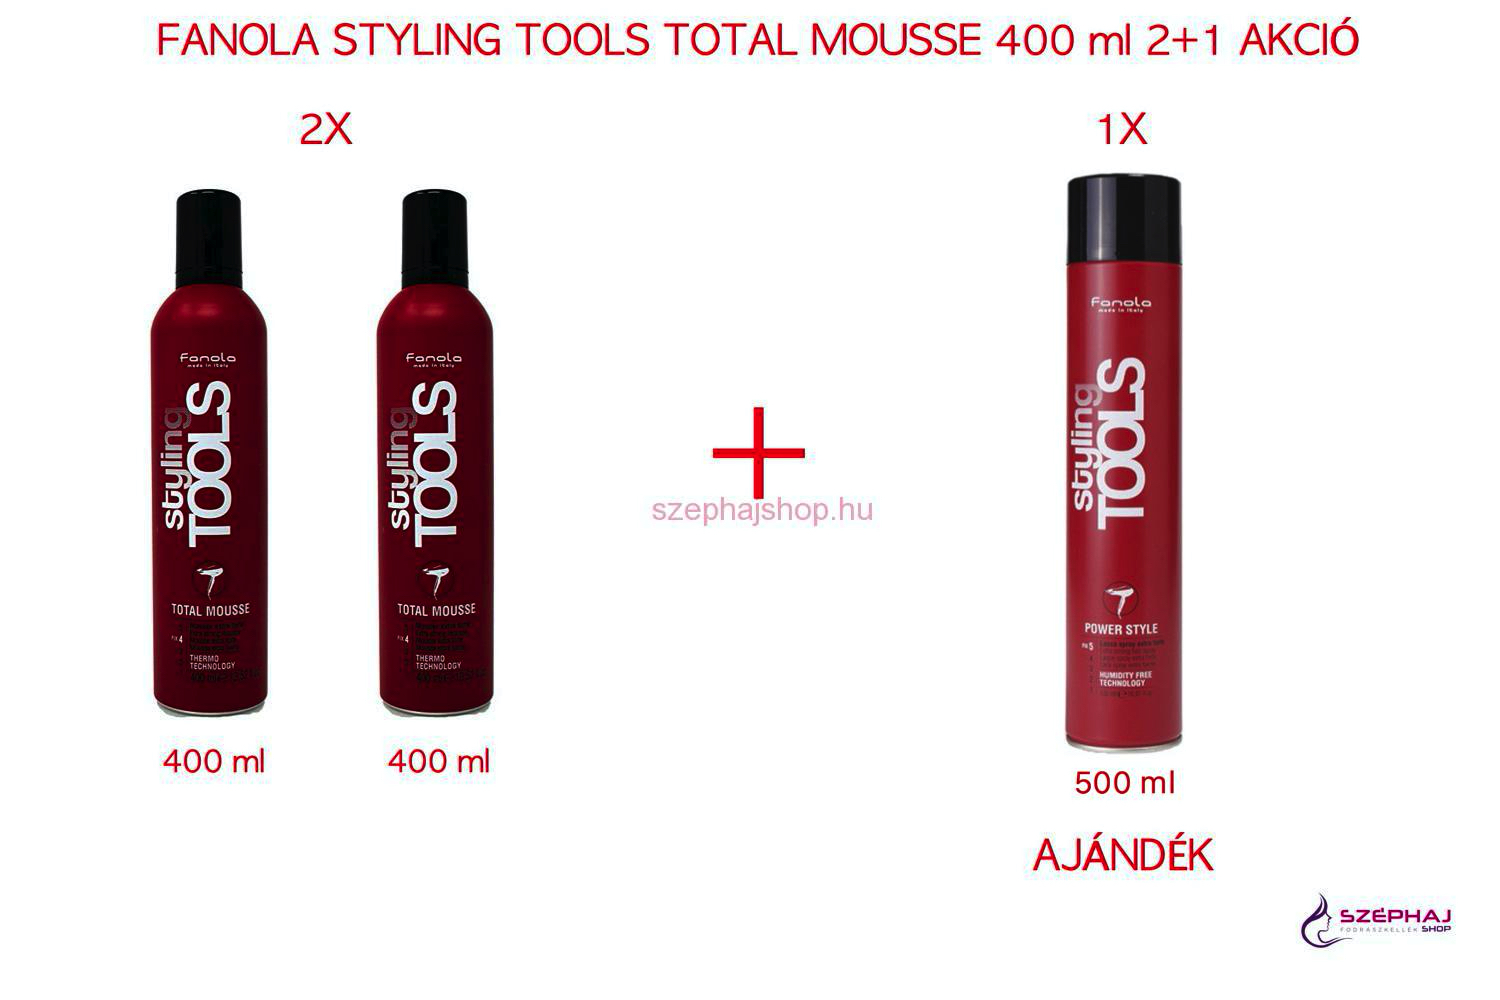 FANOLA Styling Tools Total Mousse 400 ml 2+1 AKCIÓ